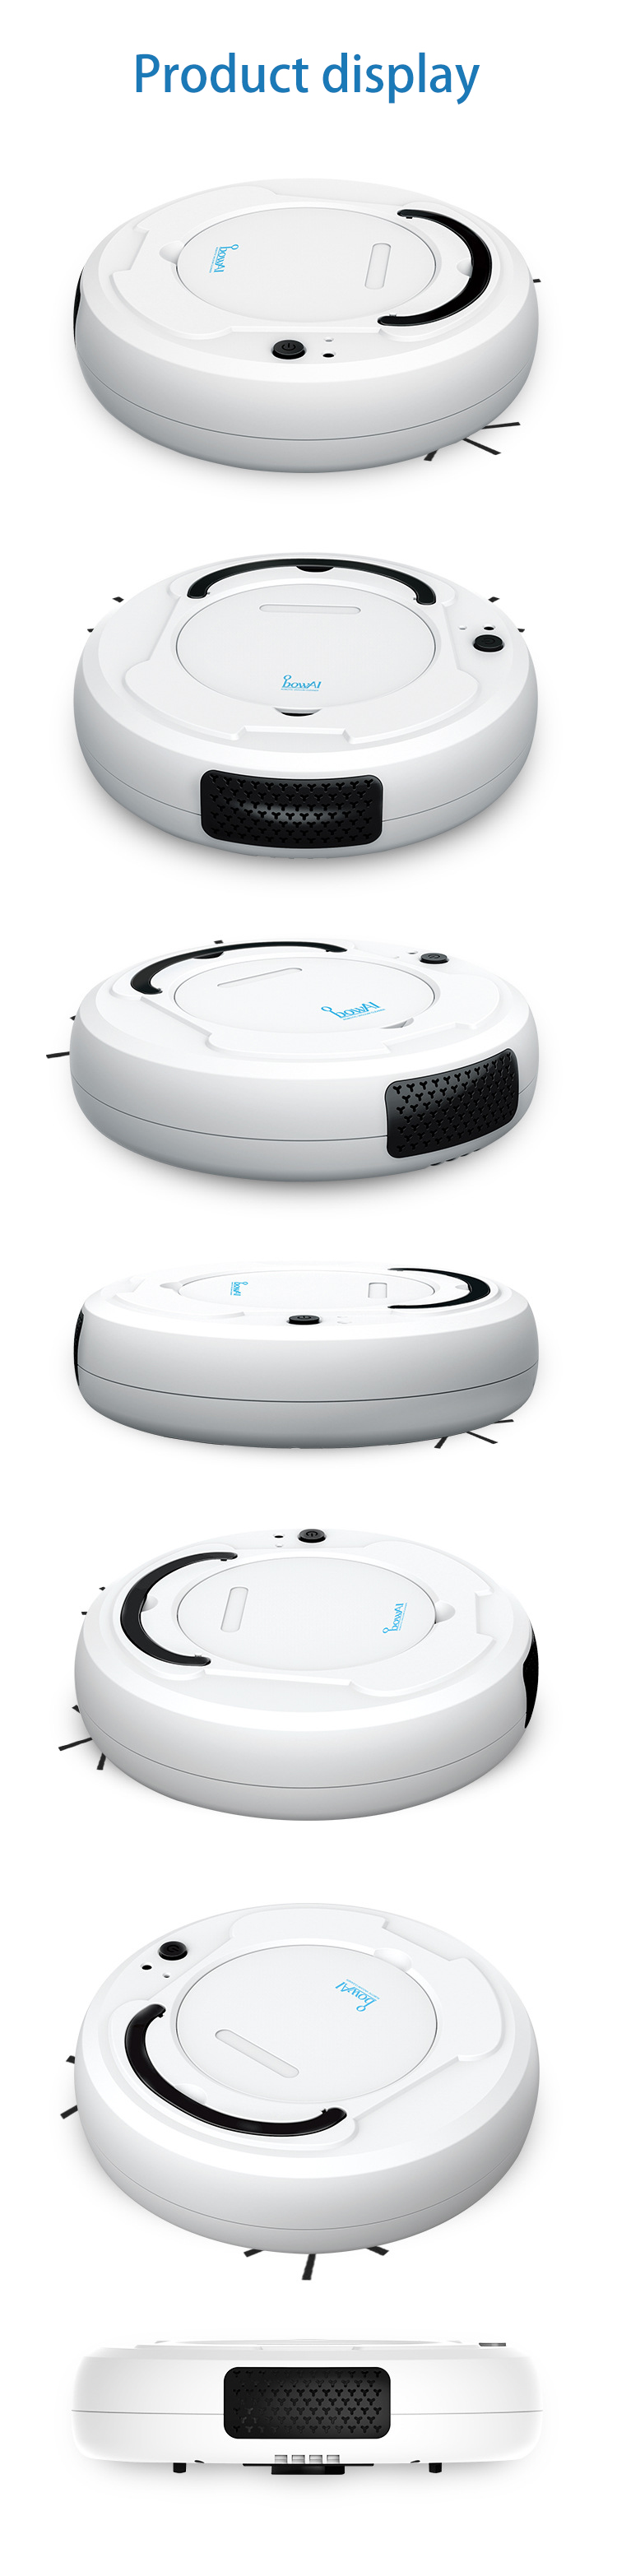 Hde2c9527449a42babeb1815200d5dd53Q LEARNHAI Christmas Gift OB8 Automatic Rechargeable Strong Suction Sweeping Smart Clean Robot Vacuum Cleaner For Home Office